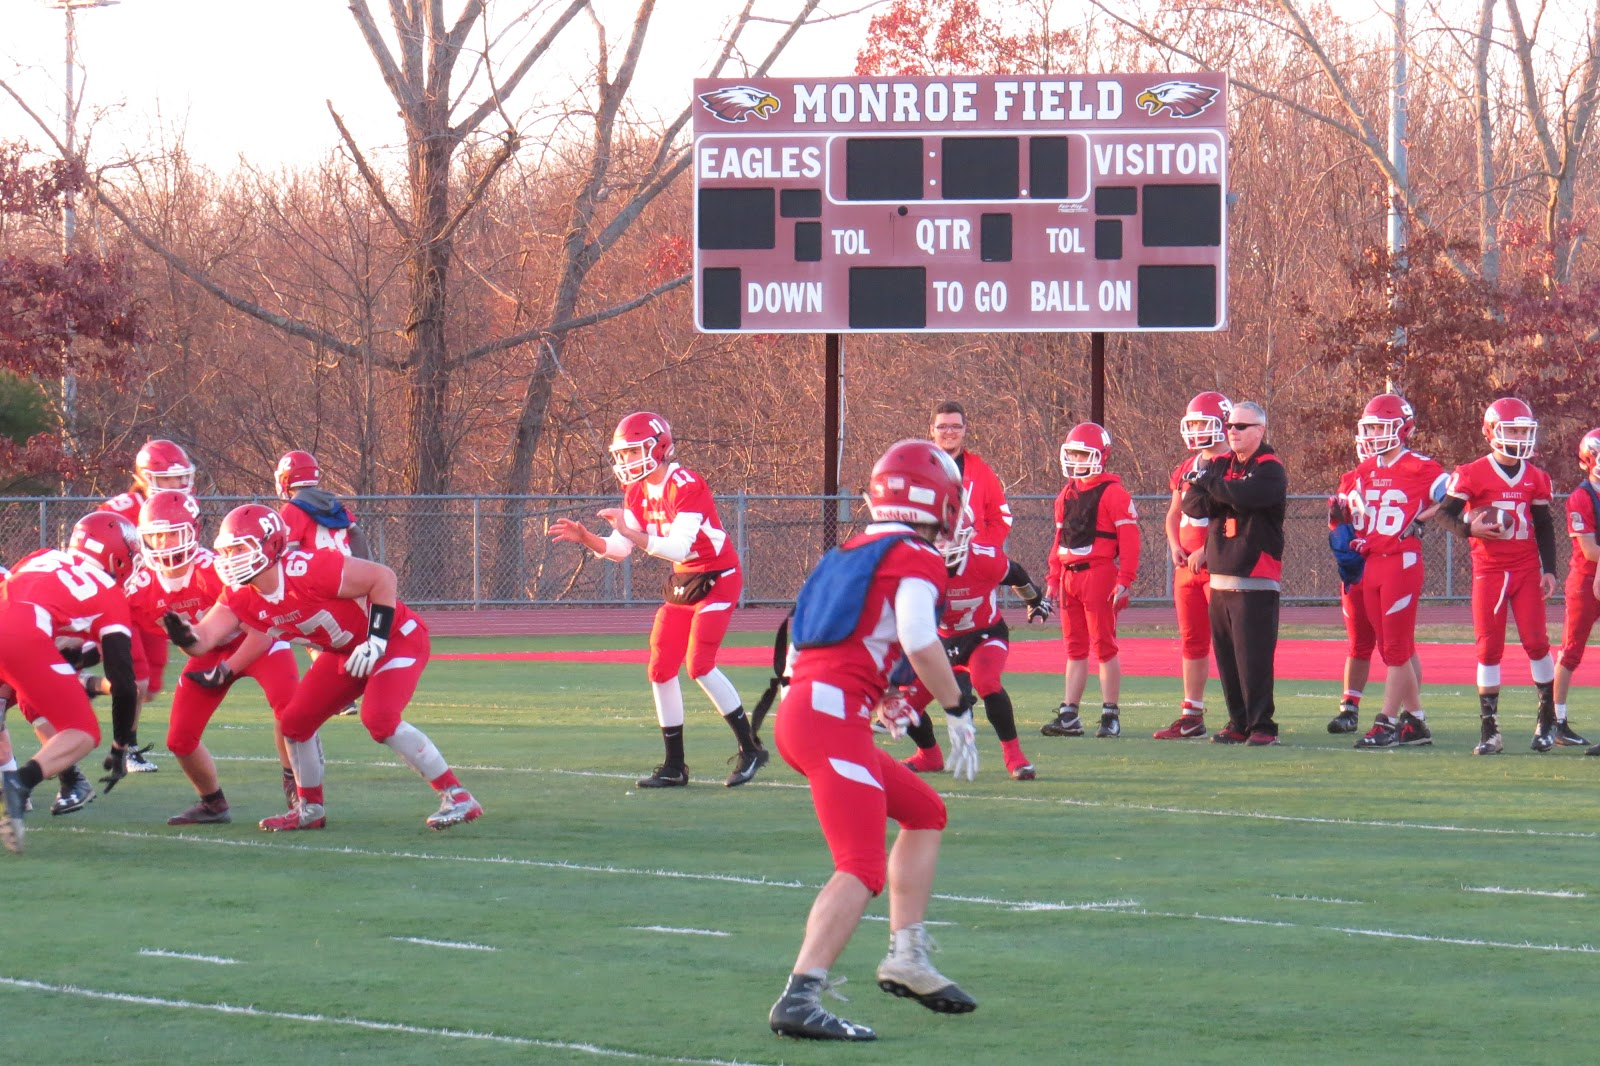 Sports on ct 69 november 2016 wolcott will attempt to keep points off the visitor side st joseph of the monroe field scoreboard as much as possible on tuesday sciox Images